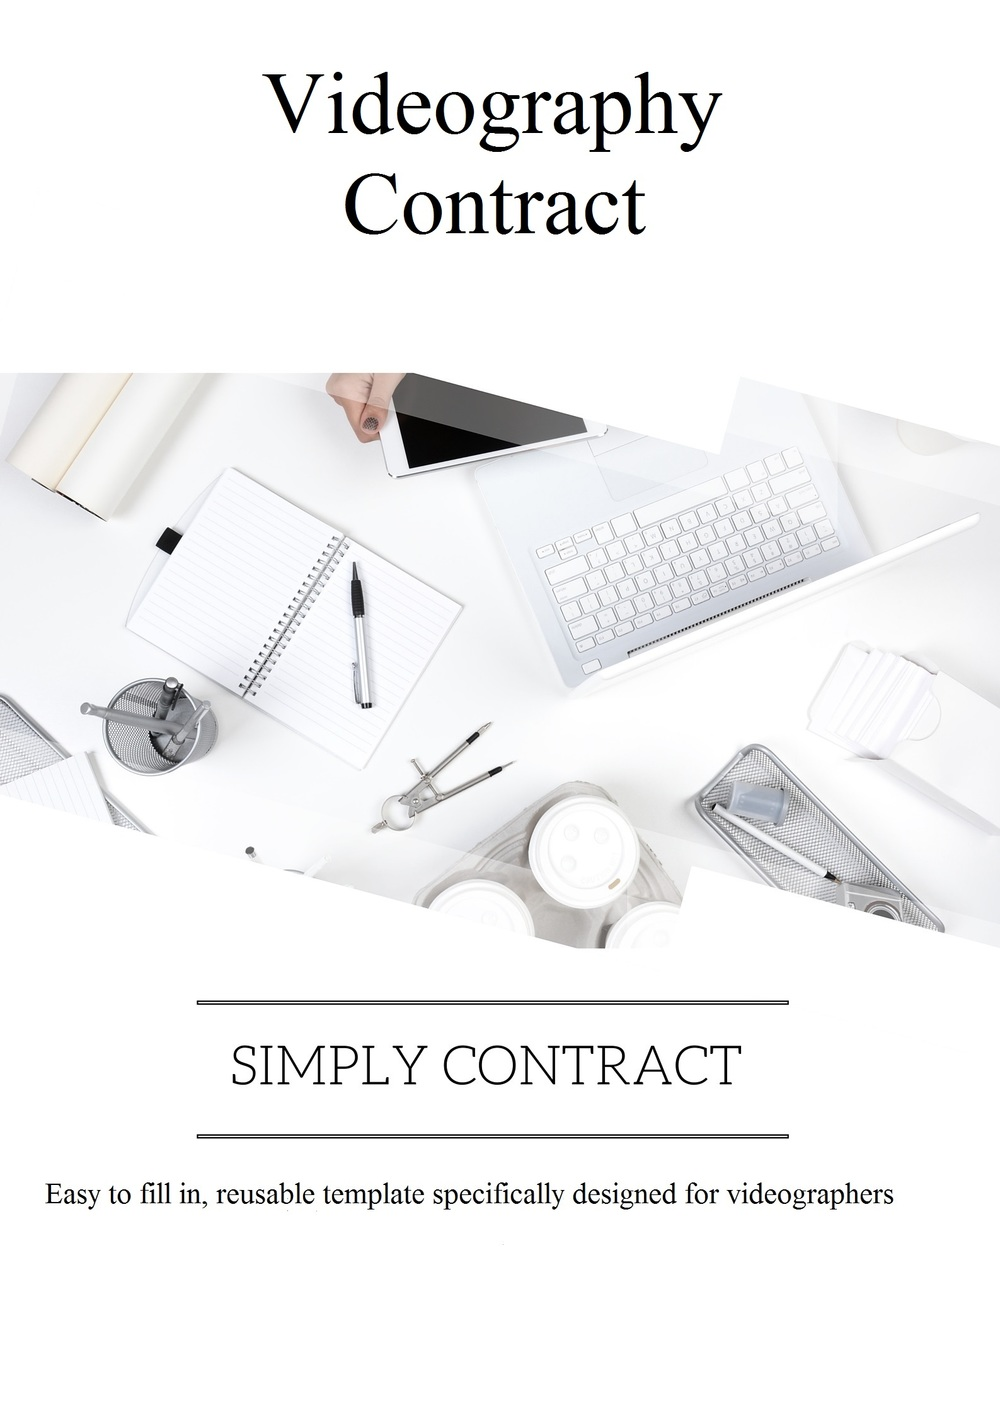 Videography Contract Simply Contract – Videography Contract Template